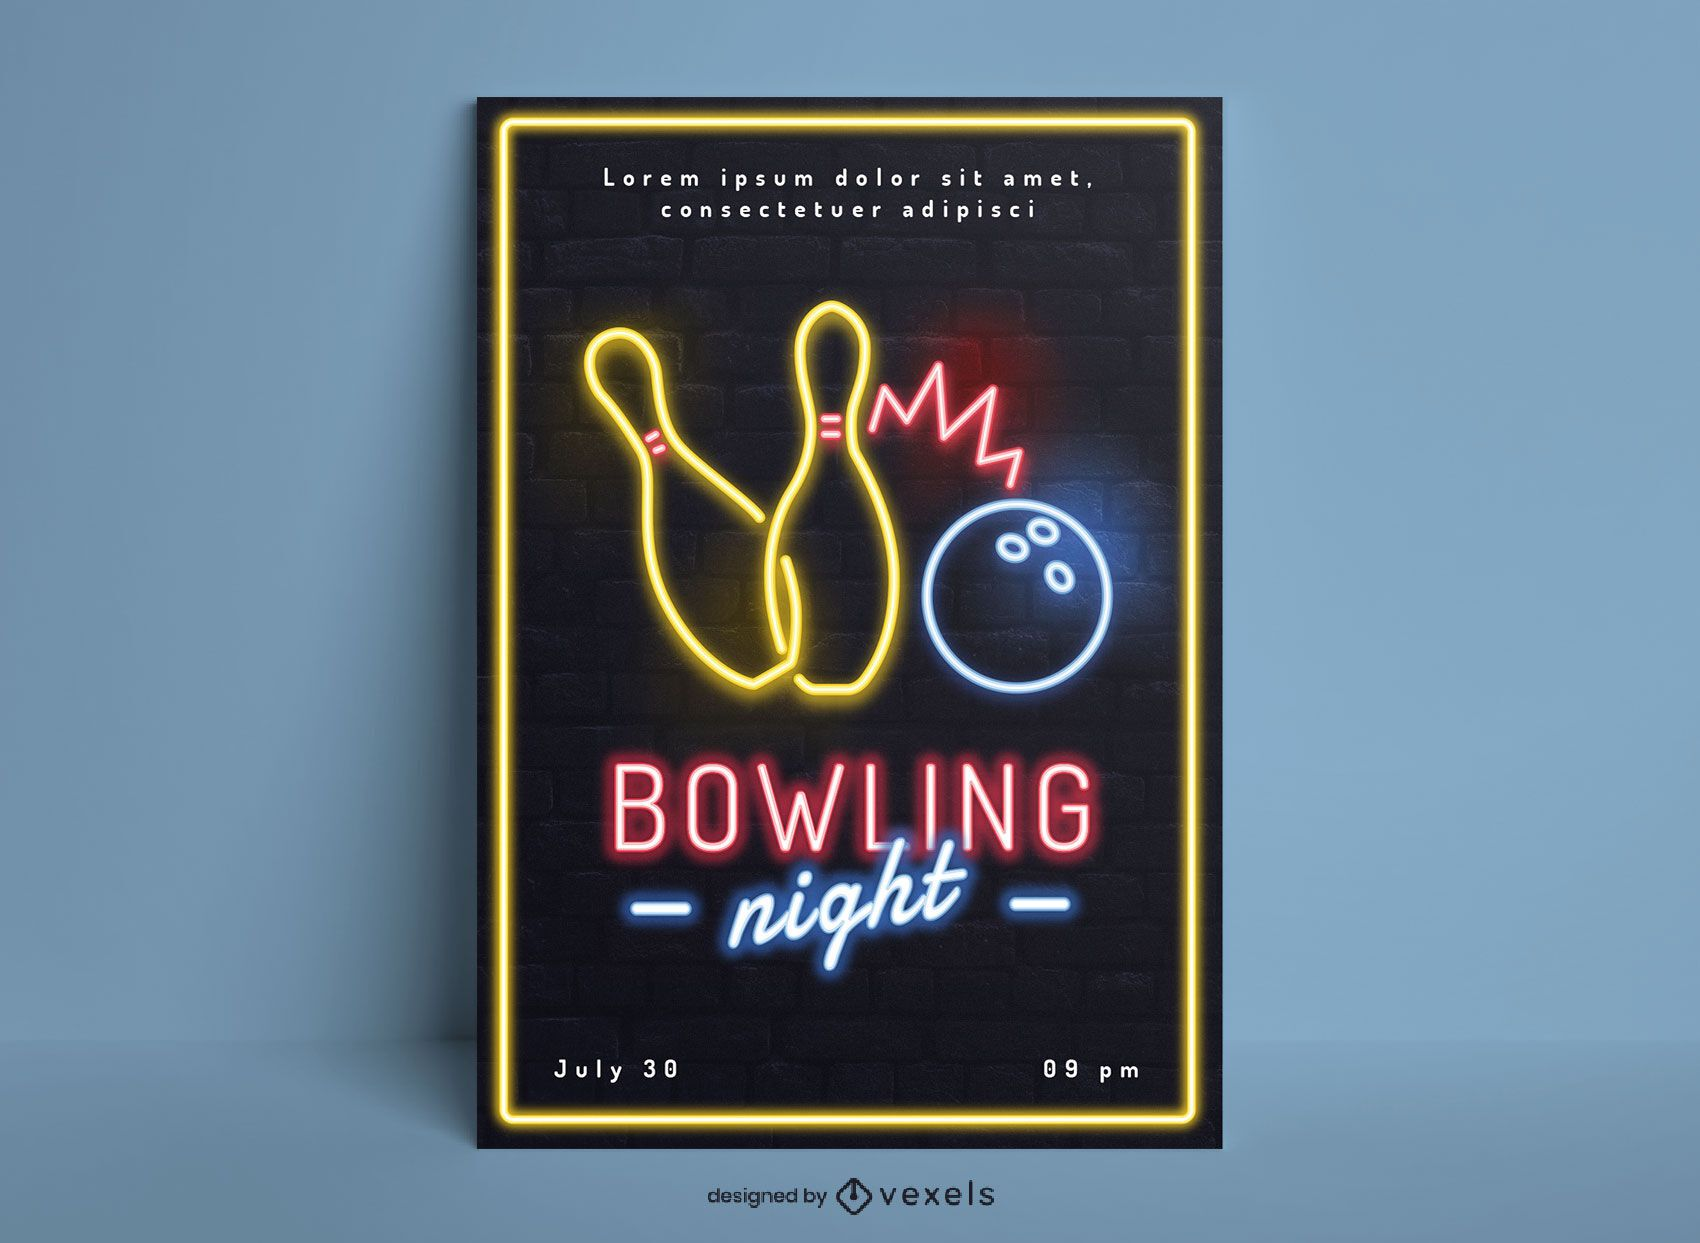 Bowling Nacht Hobby Neon Poster Design